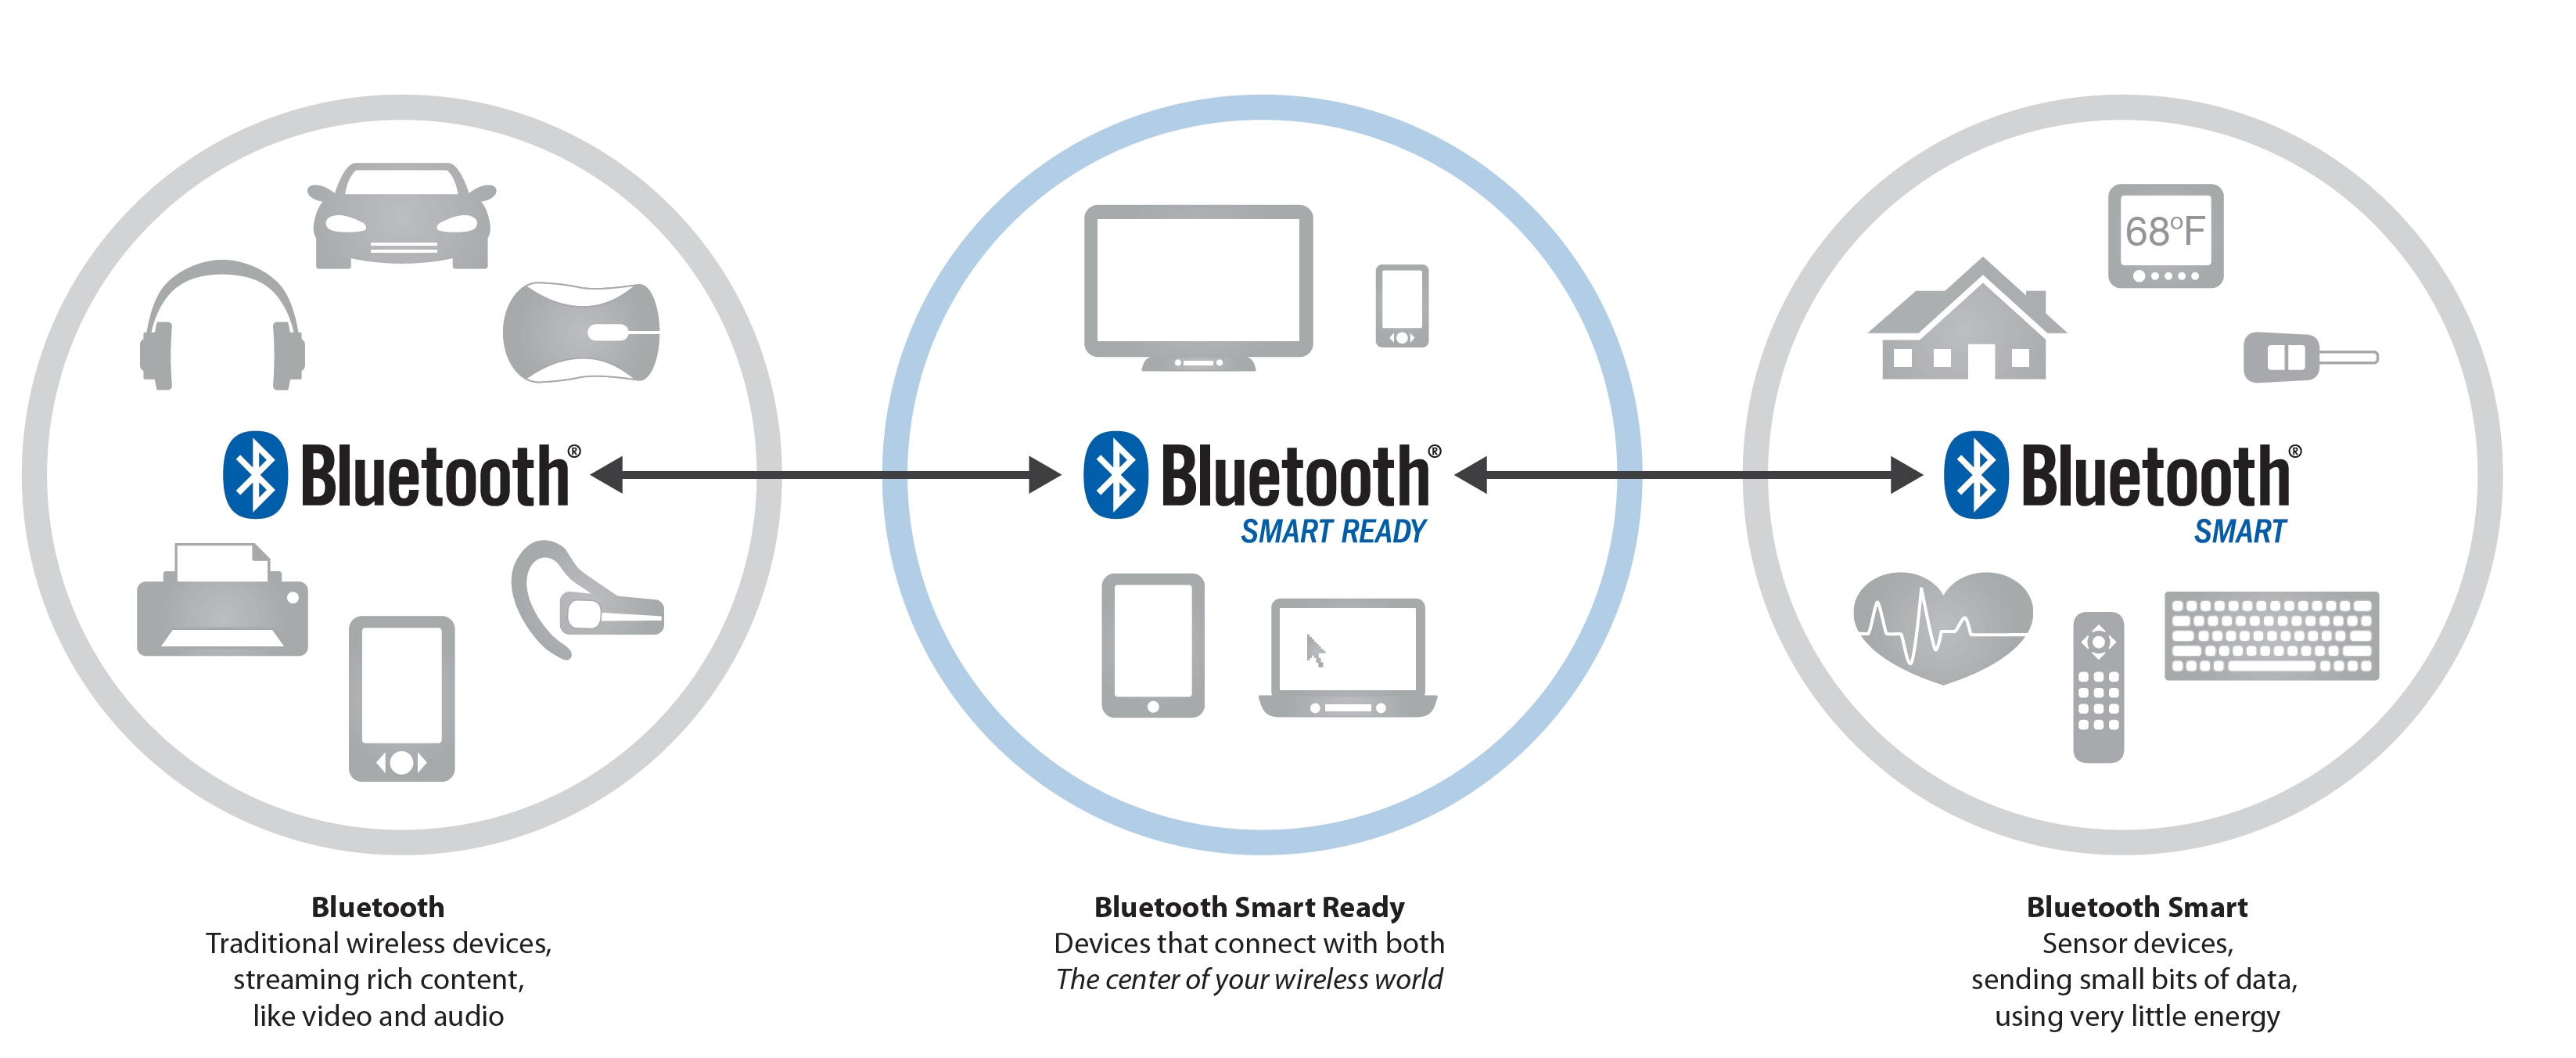 Bluetooth Types Comparision